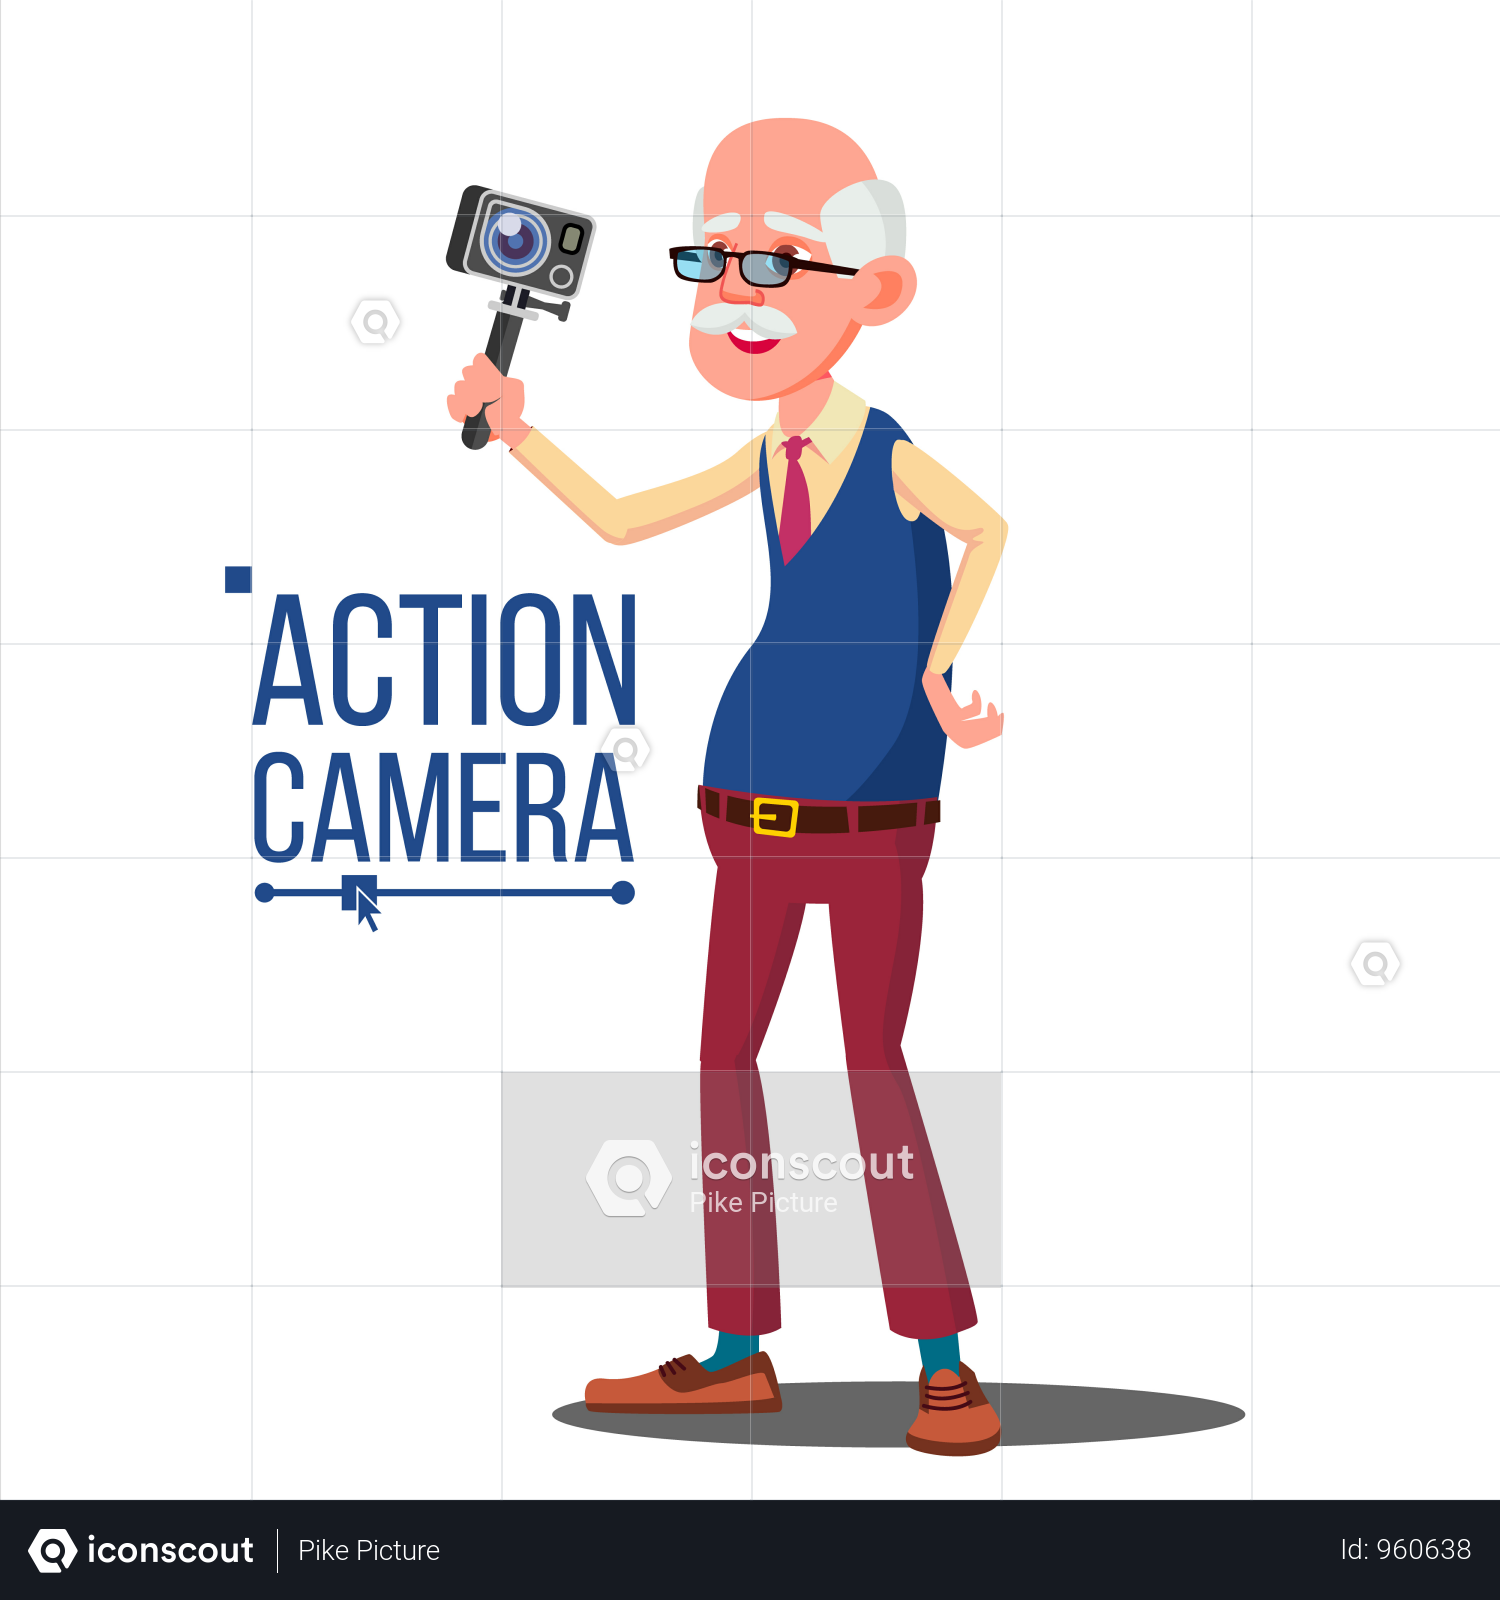 Premium Old Man With Action Camera Illustration Download In Png Vector Format Camera Illustration Action Camera Retro Camera